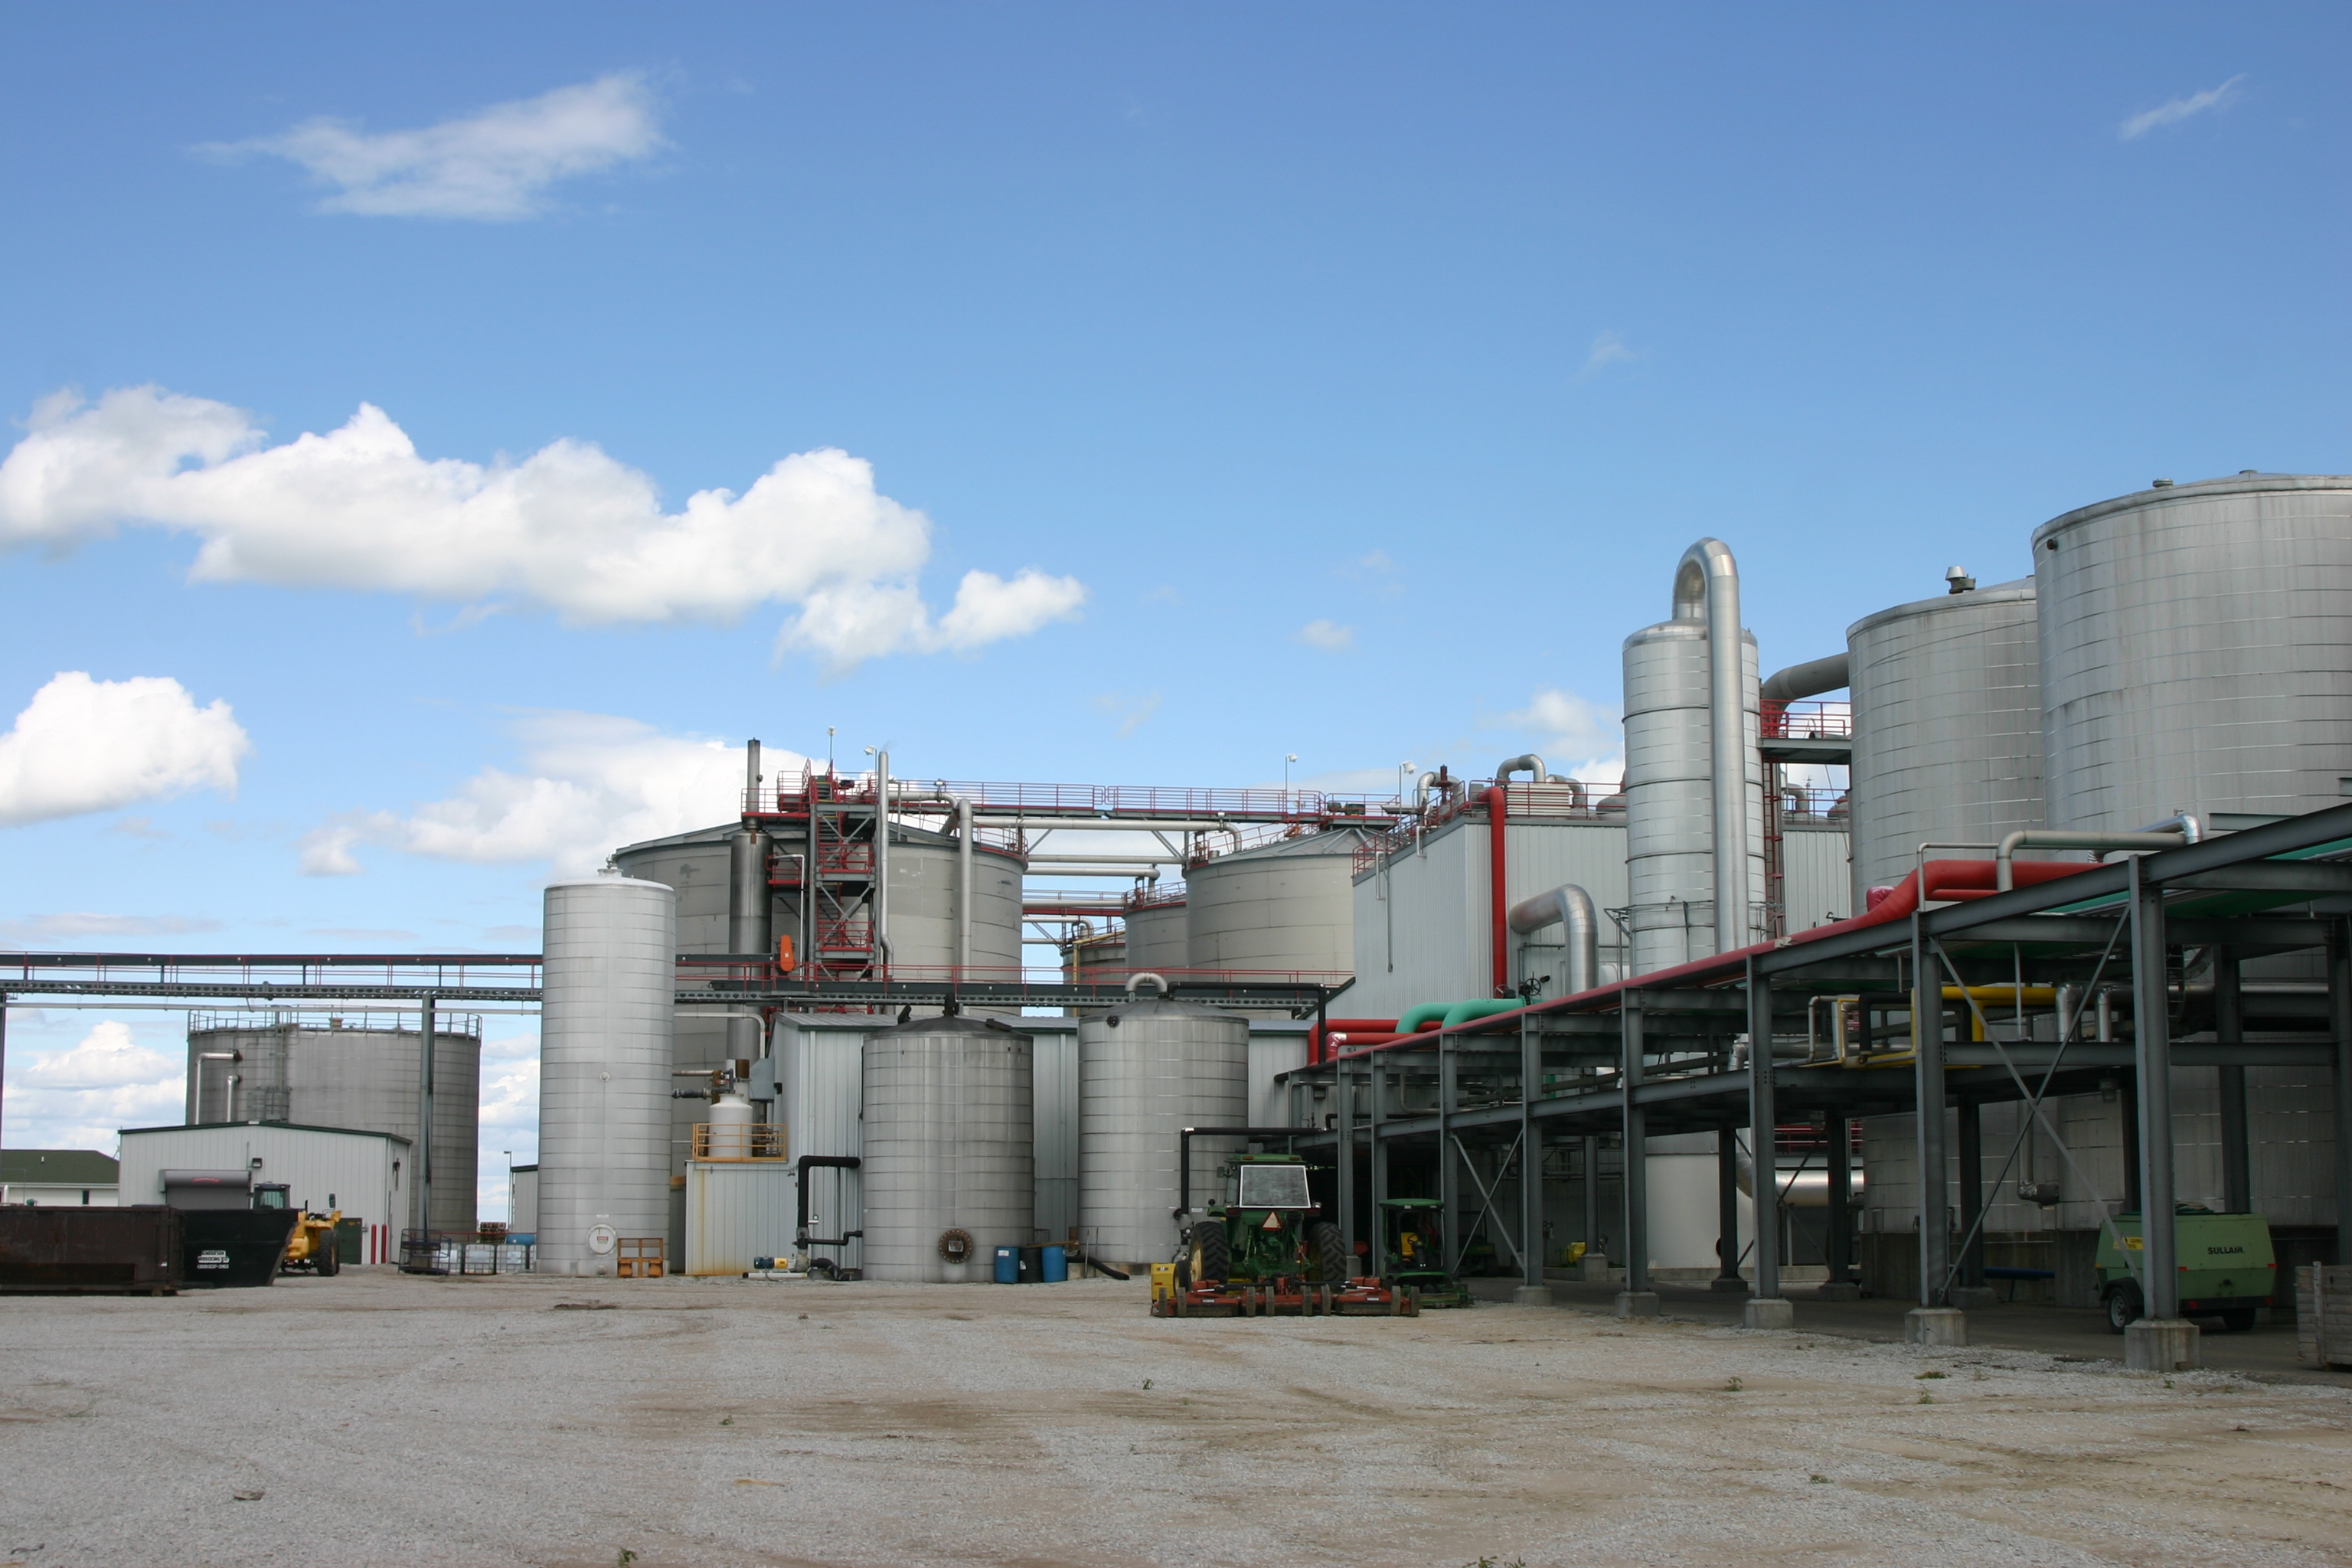 Archer Daniels Midland has asked a federal court in Nebraska to dismiss a lawsuit filed by Green Plains Inc., alleging ethanol price manipulation. (DTN file photo by Elaine Shein)